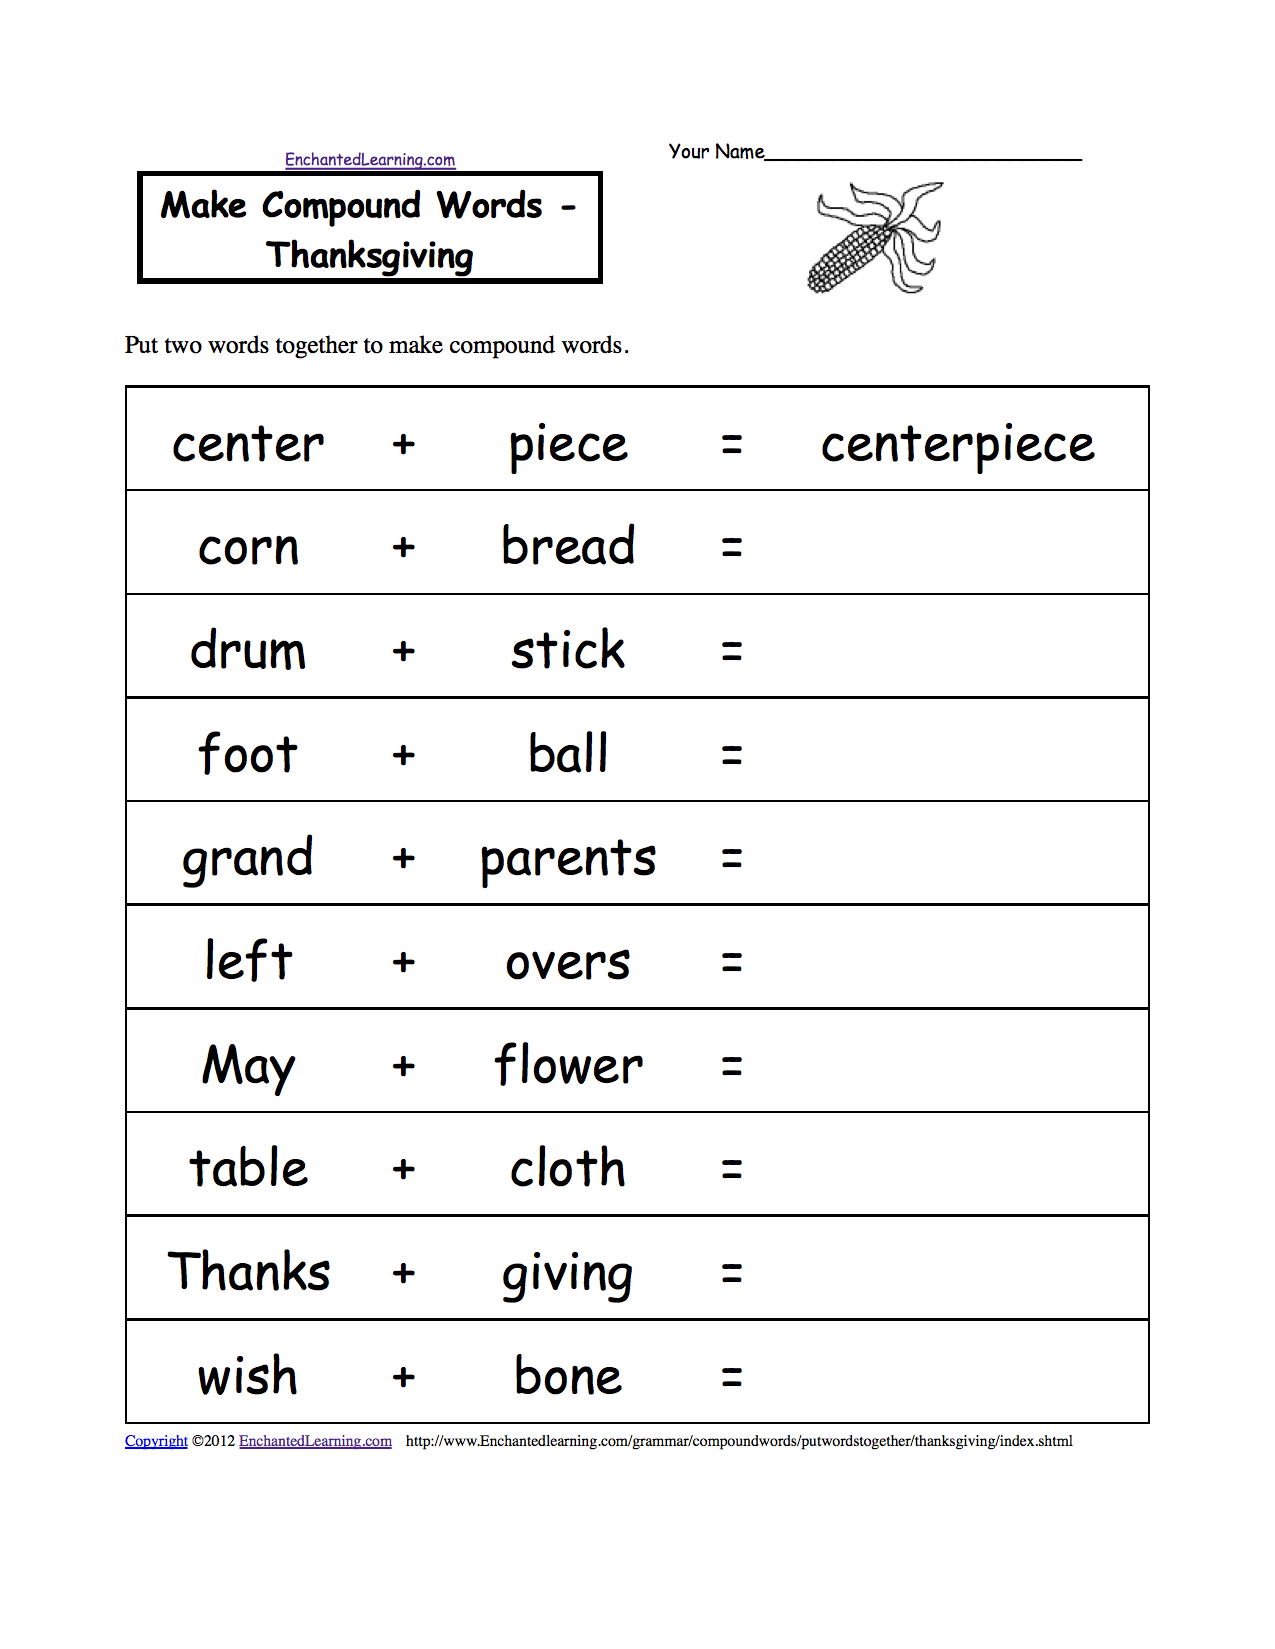 worksheet Thanksgiving Printable Worksheets thanksgiving crafts worksheets and activities make compound words printable worksheet